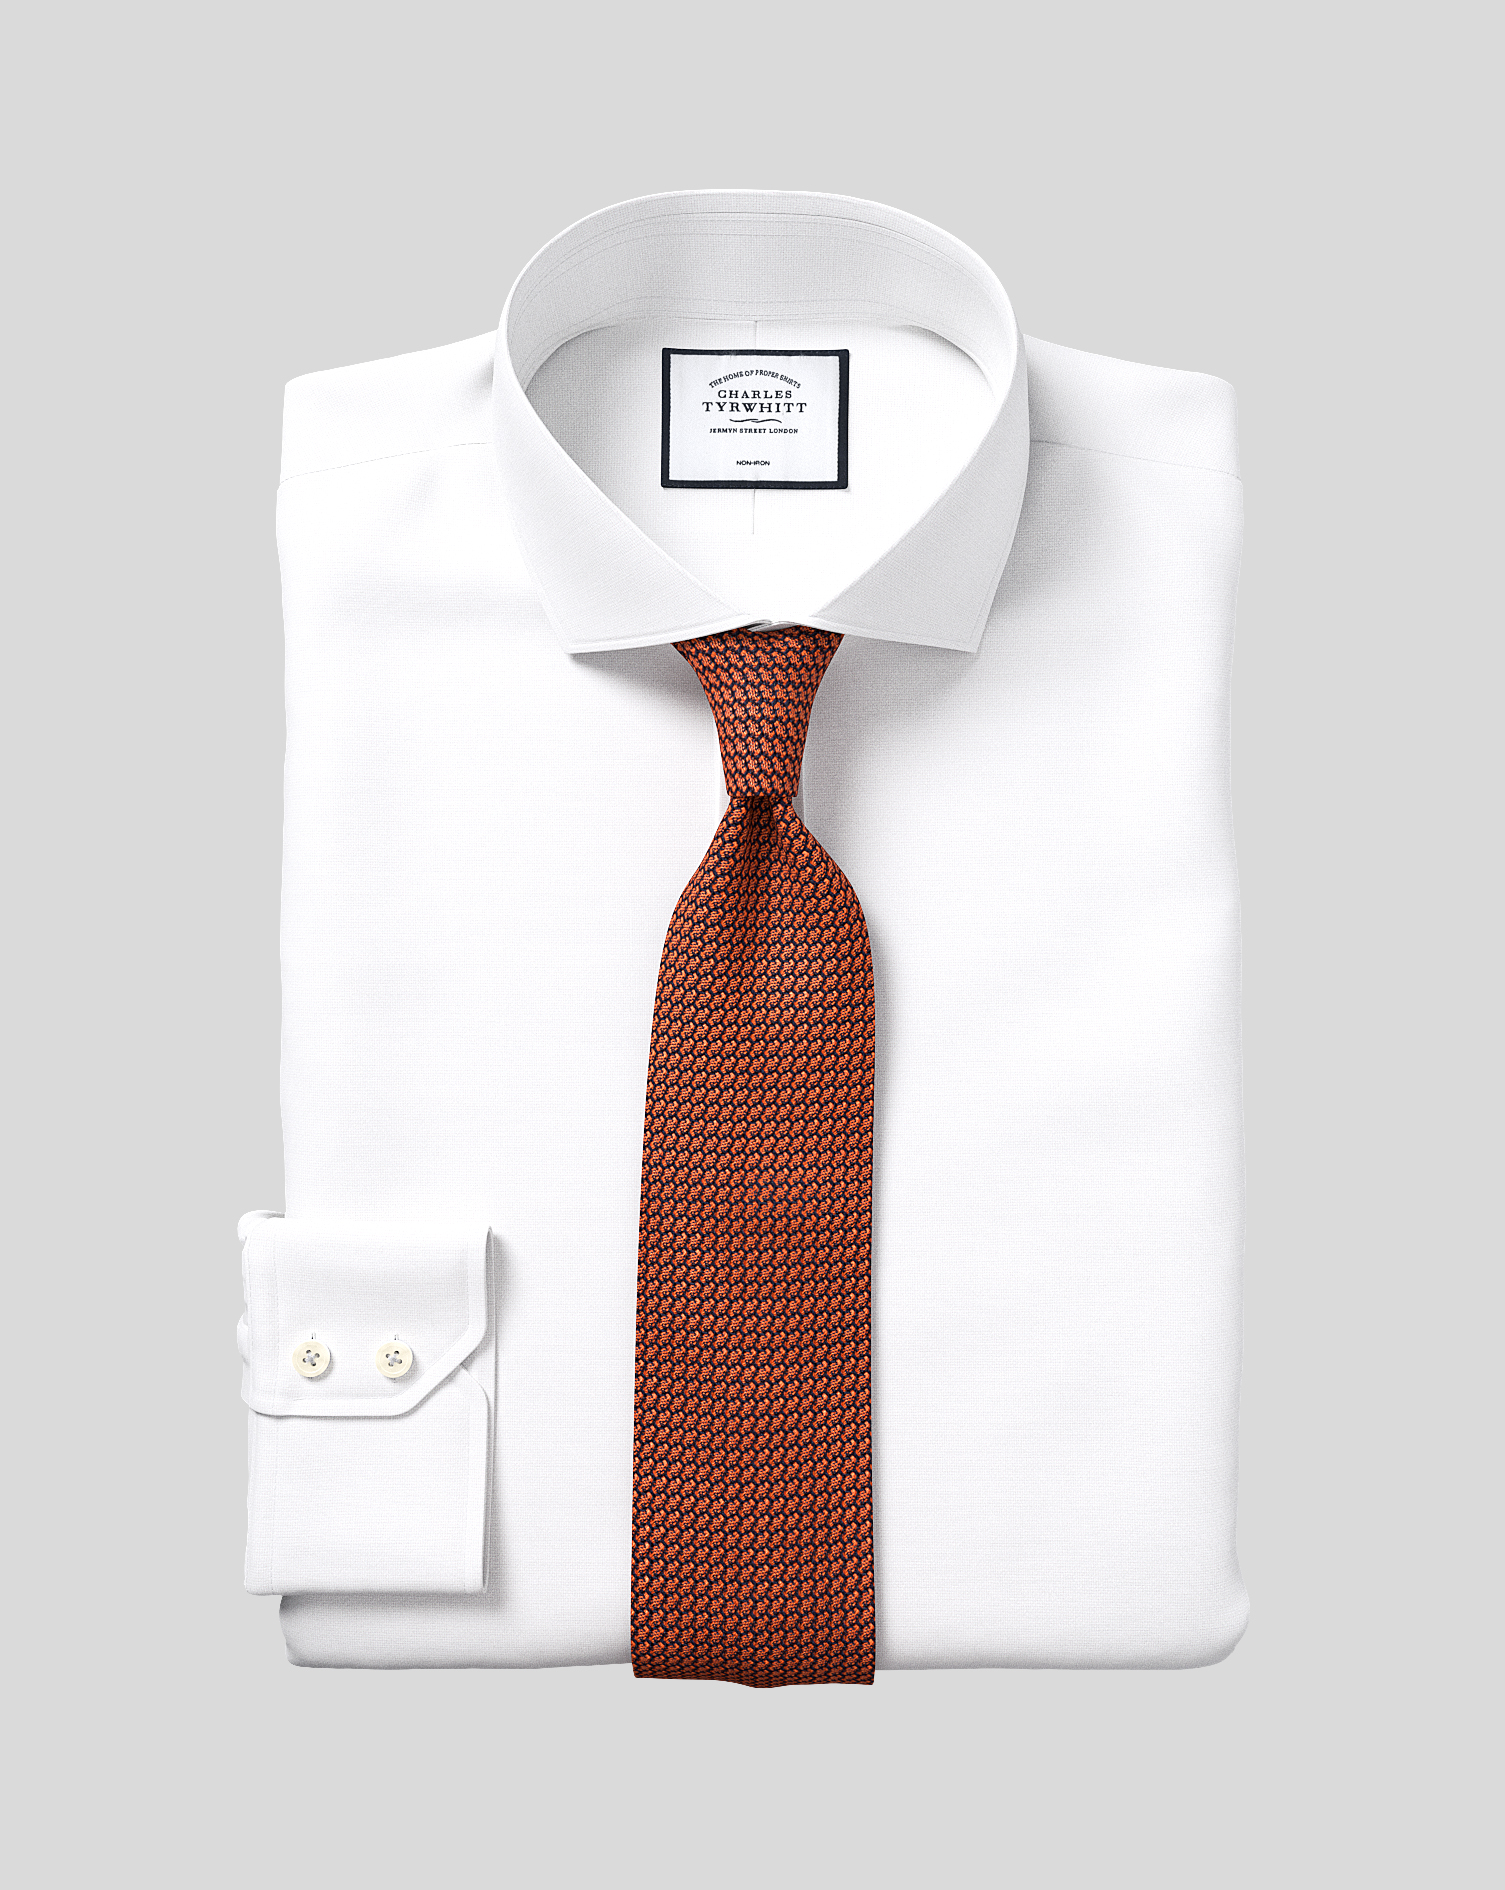 Extra Slim Fit Non-Iron White Oxford Stretch Cotton Formal Shirt Single Cuff Size 15.5/36 by Charles